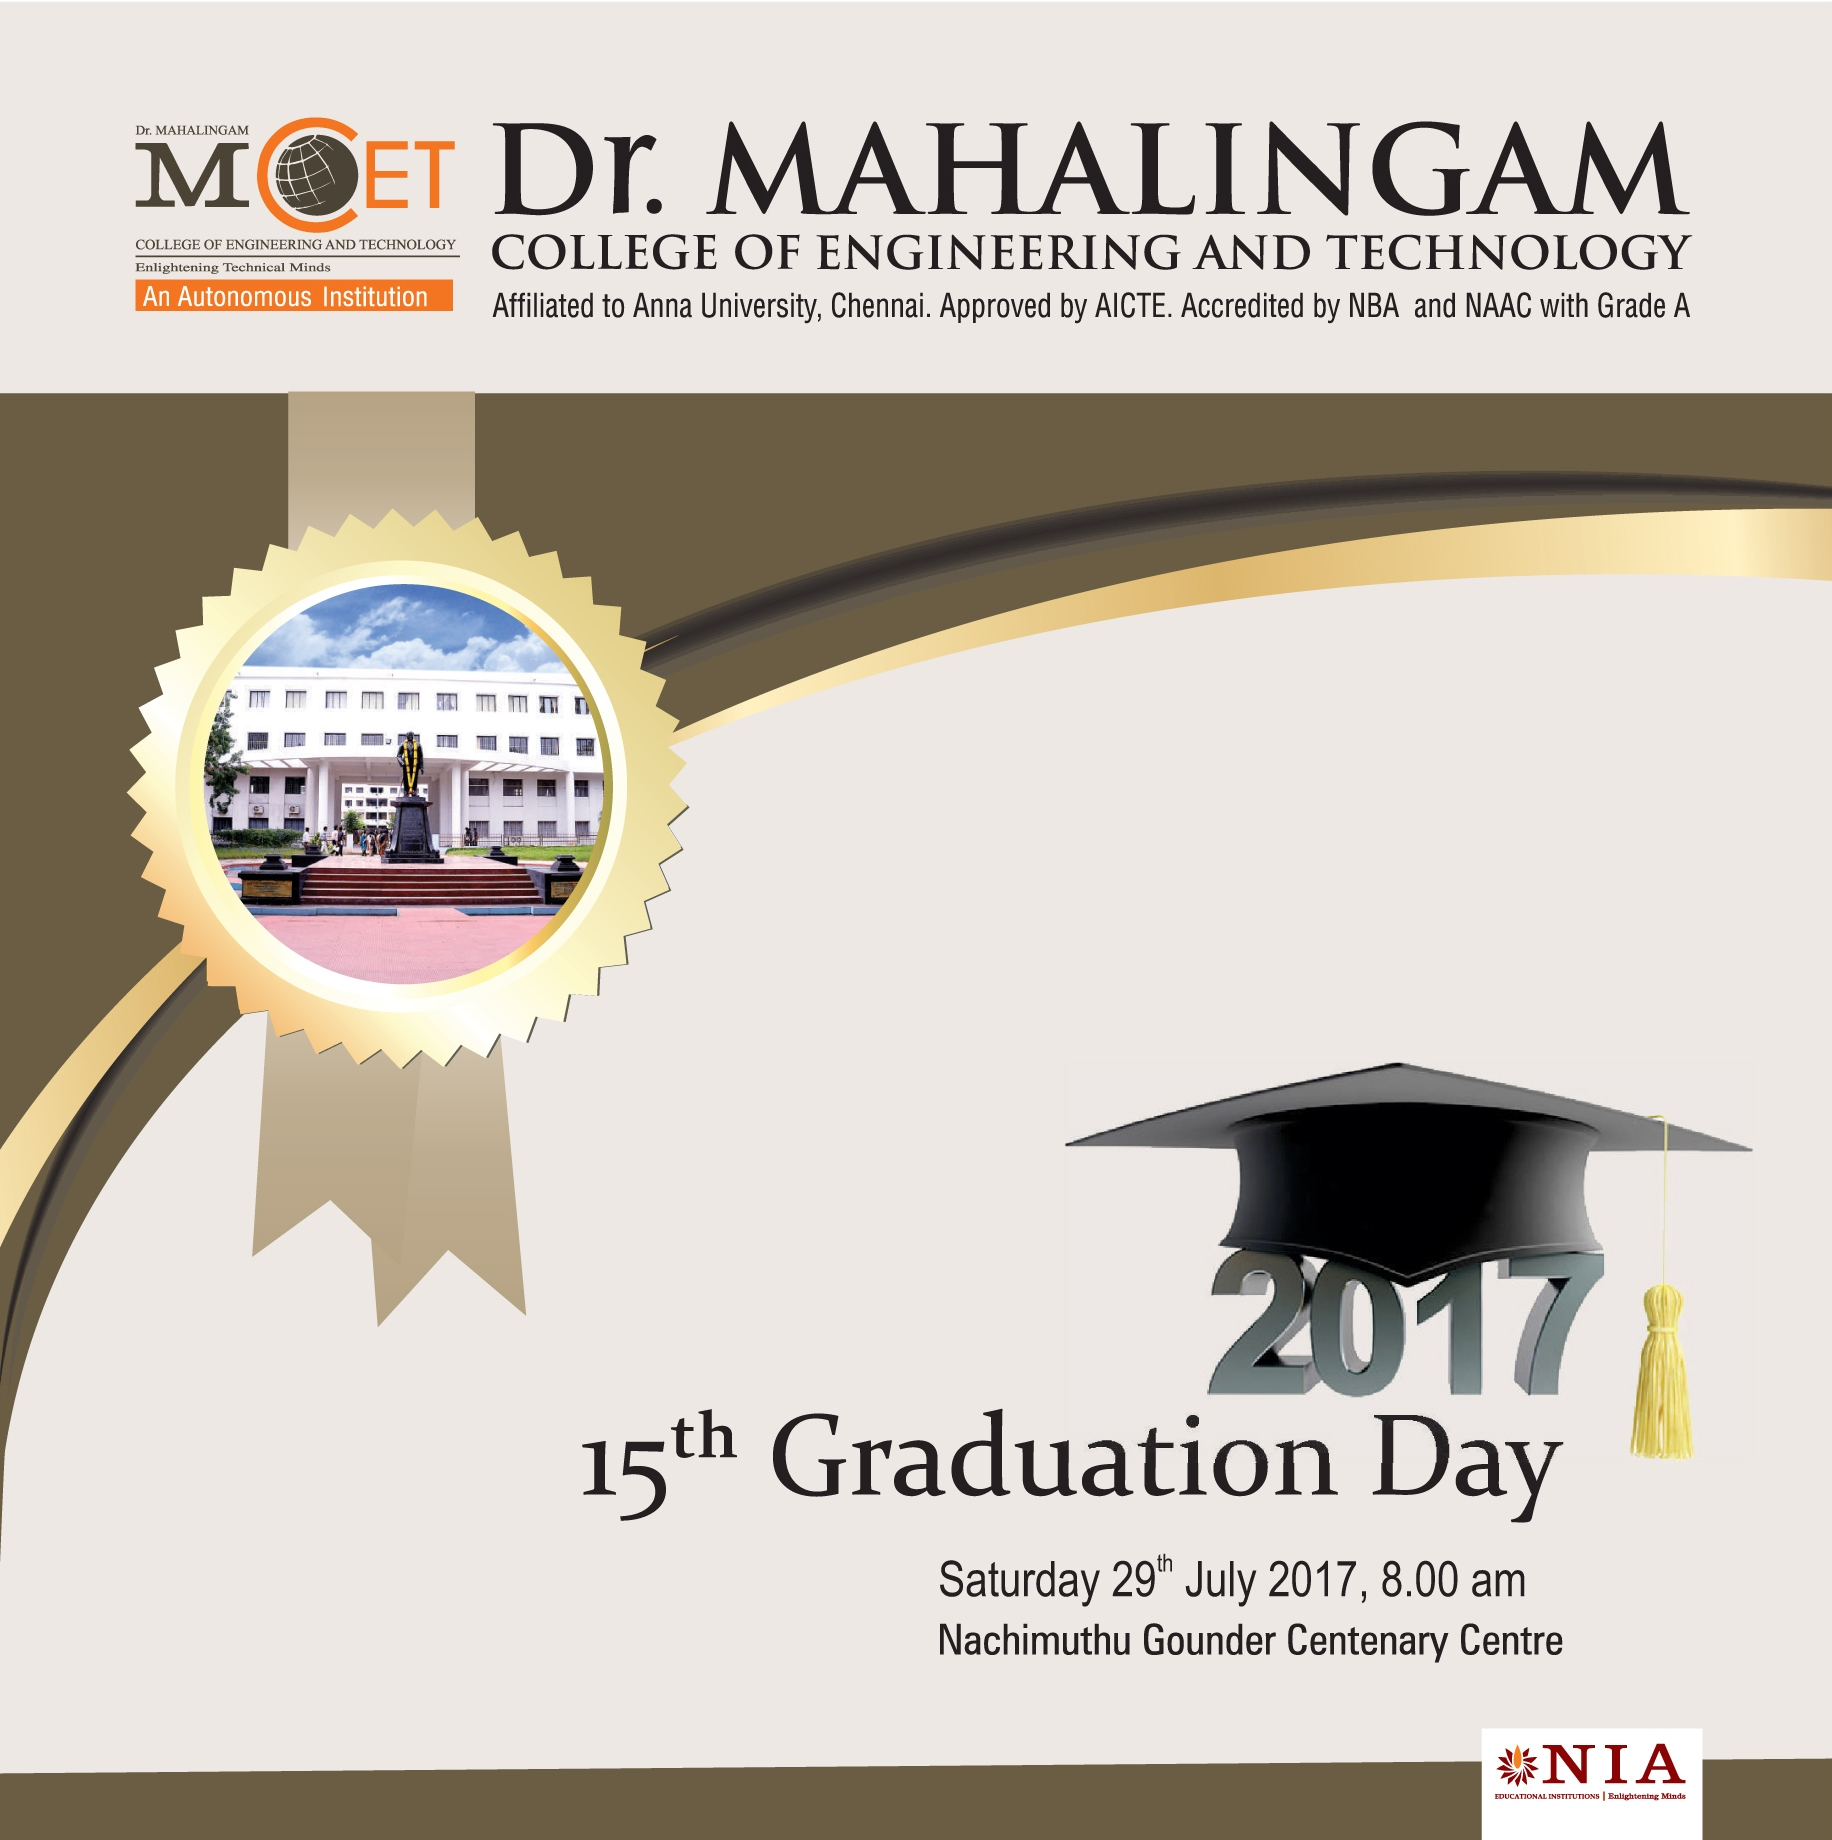 15th Graduation Day